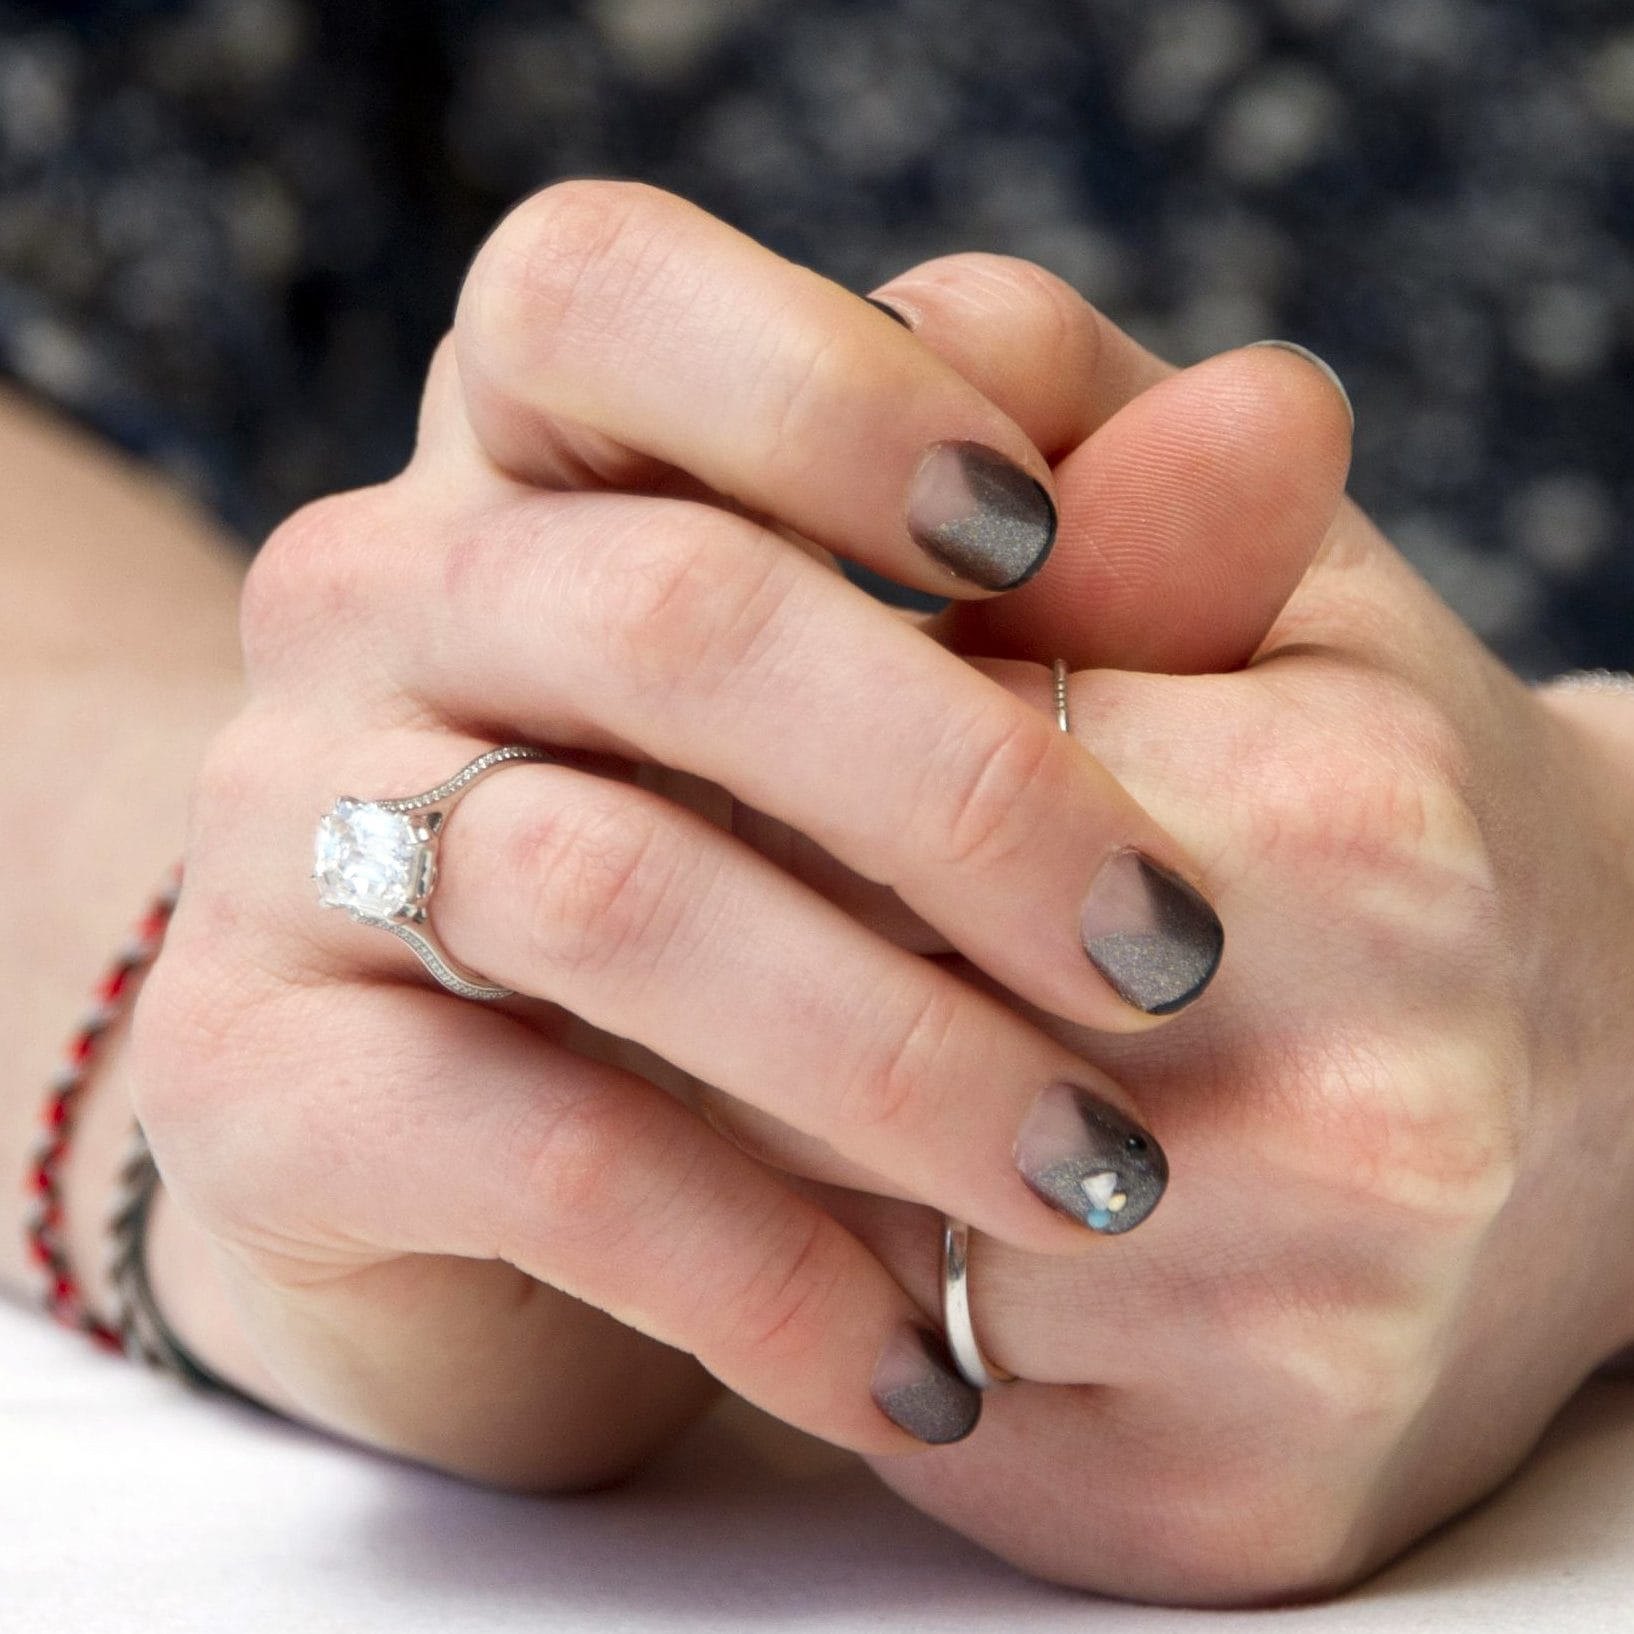 Anne Hathaway Engagement Ring Celebrity Engagement Rings